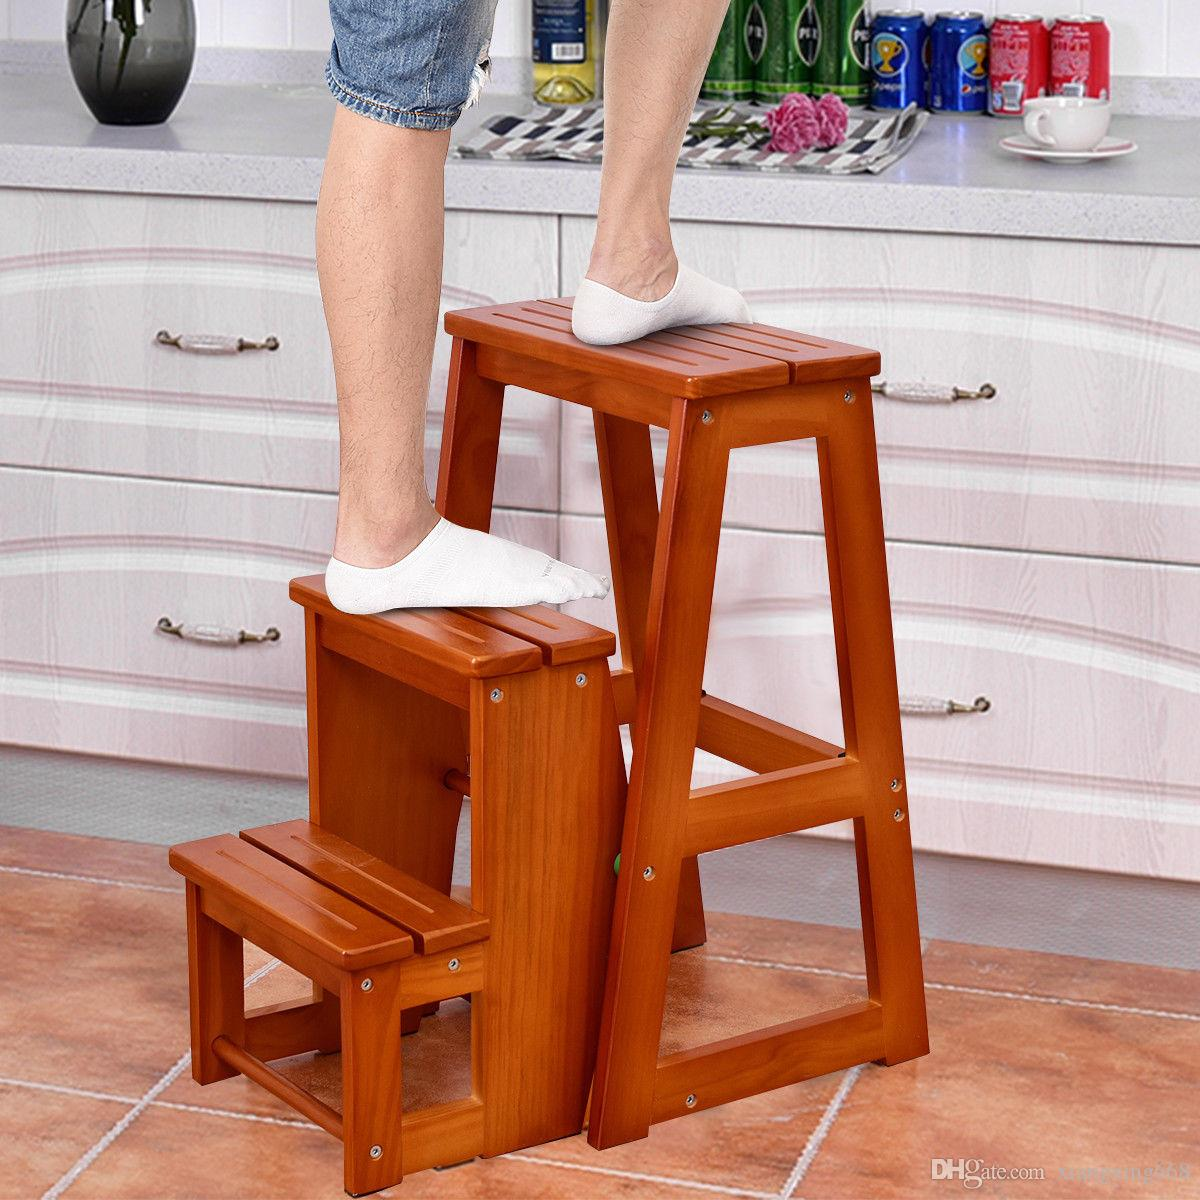 Fine 2019 Wood Step Stool Folding 3 Tier Ladder Chair Bench Seat Utility Multi Functional From Xiangxing668 53 26 Dhgate Com Gmtry Best Dining Table And Chair Ideas Images Gmtryco